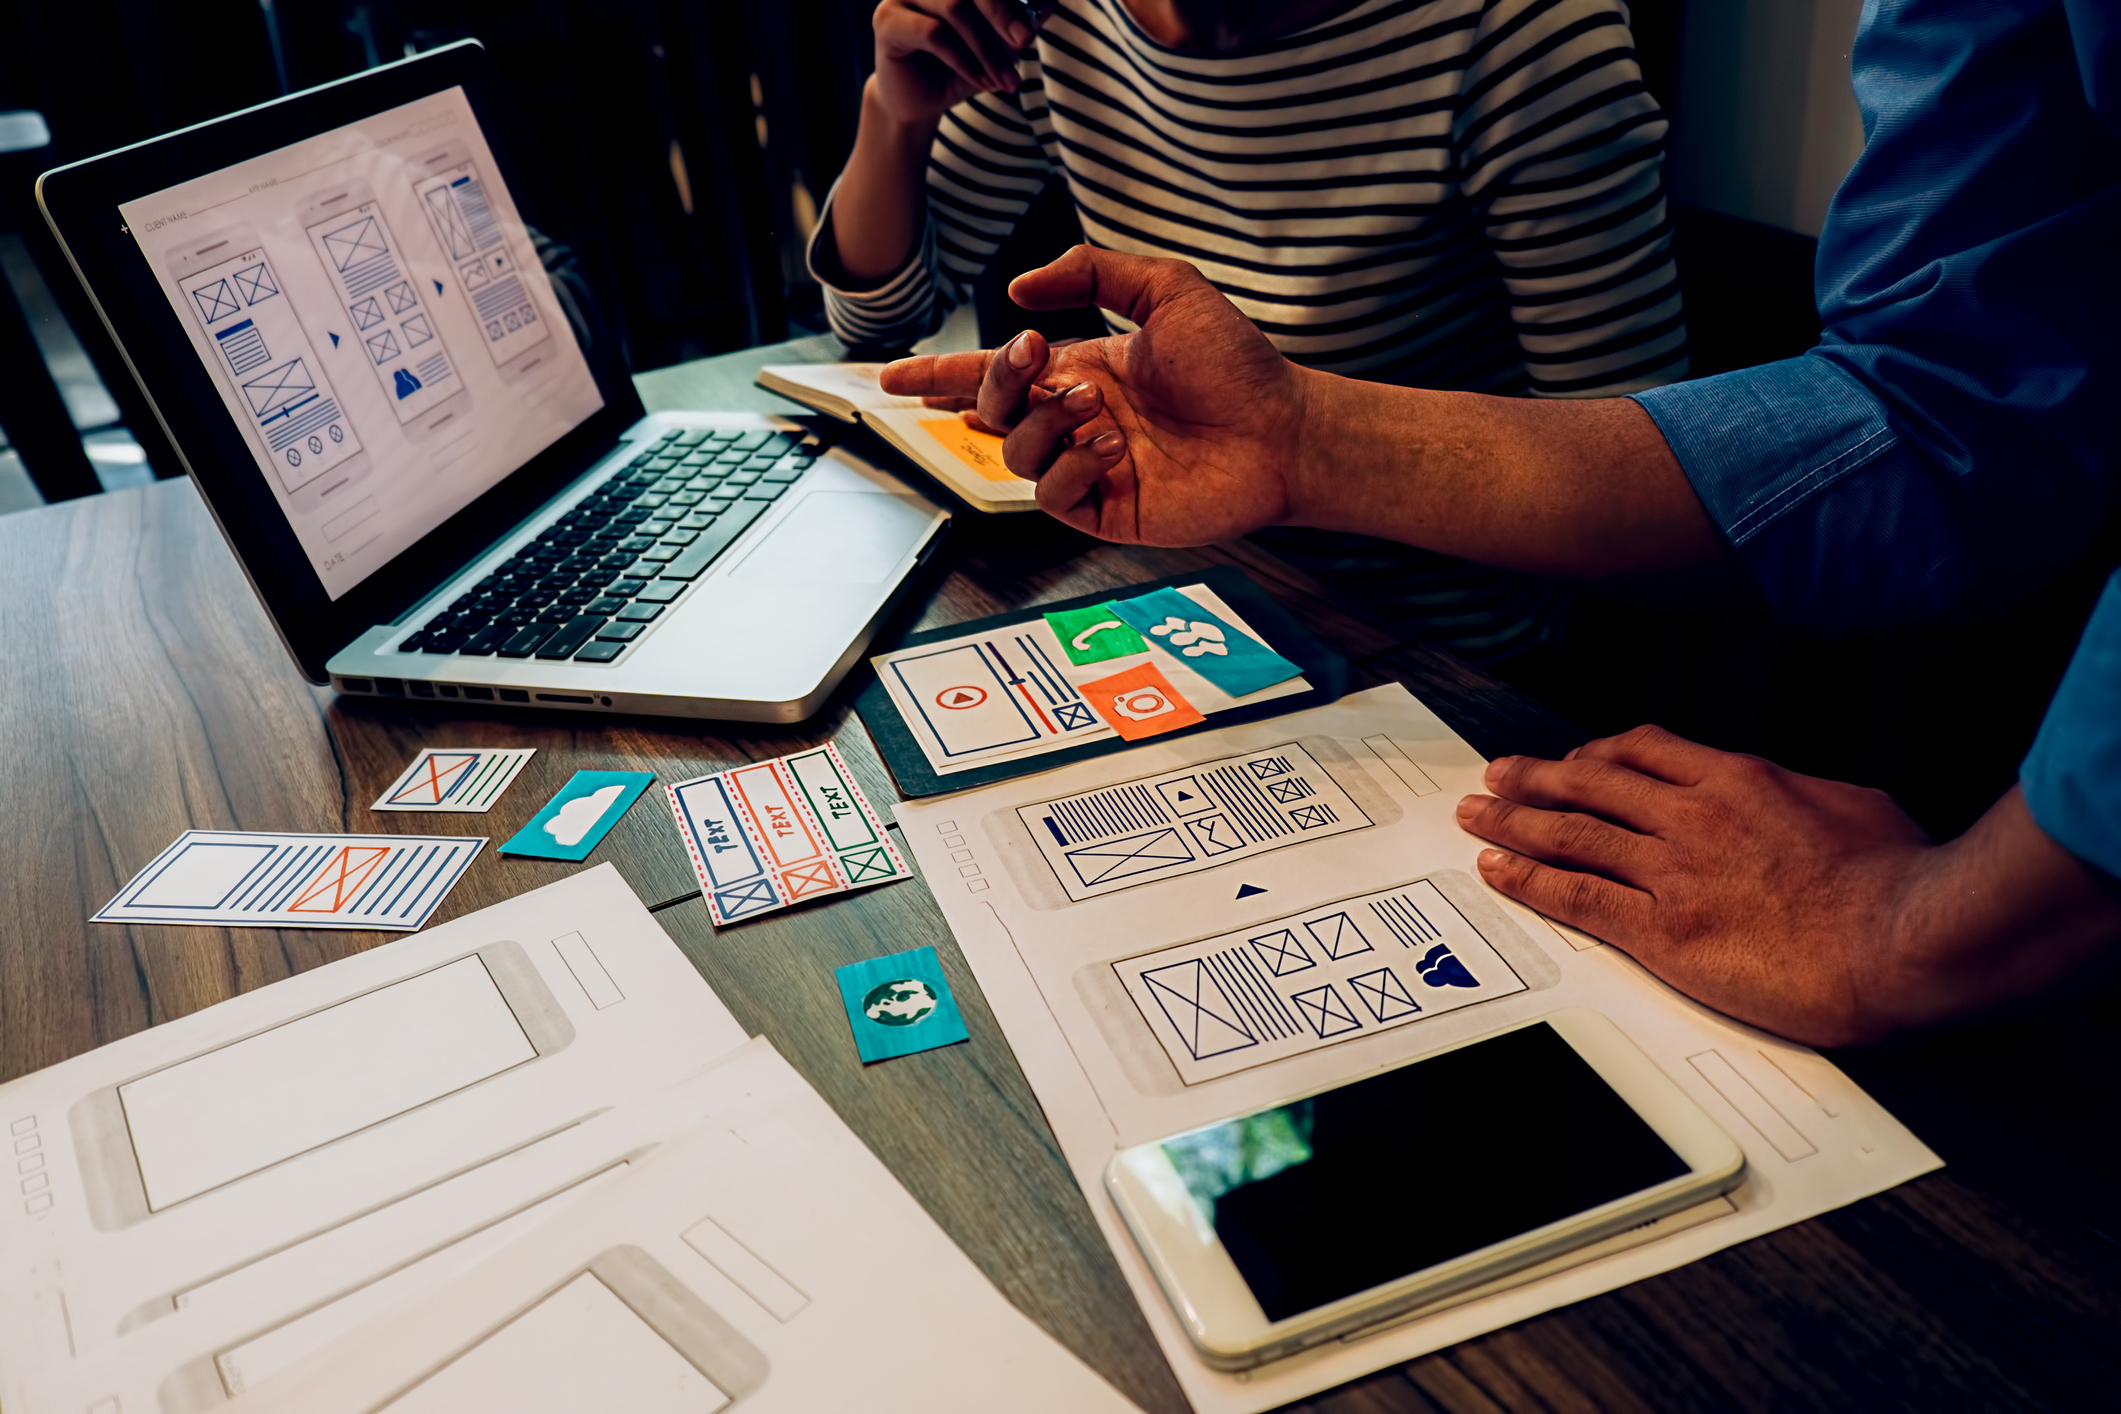 How Graphic Design and UX Work Together